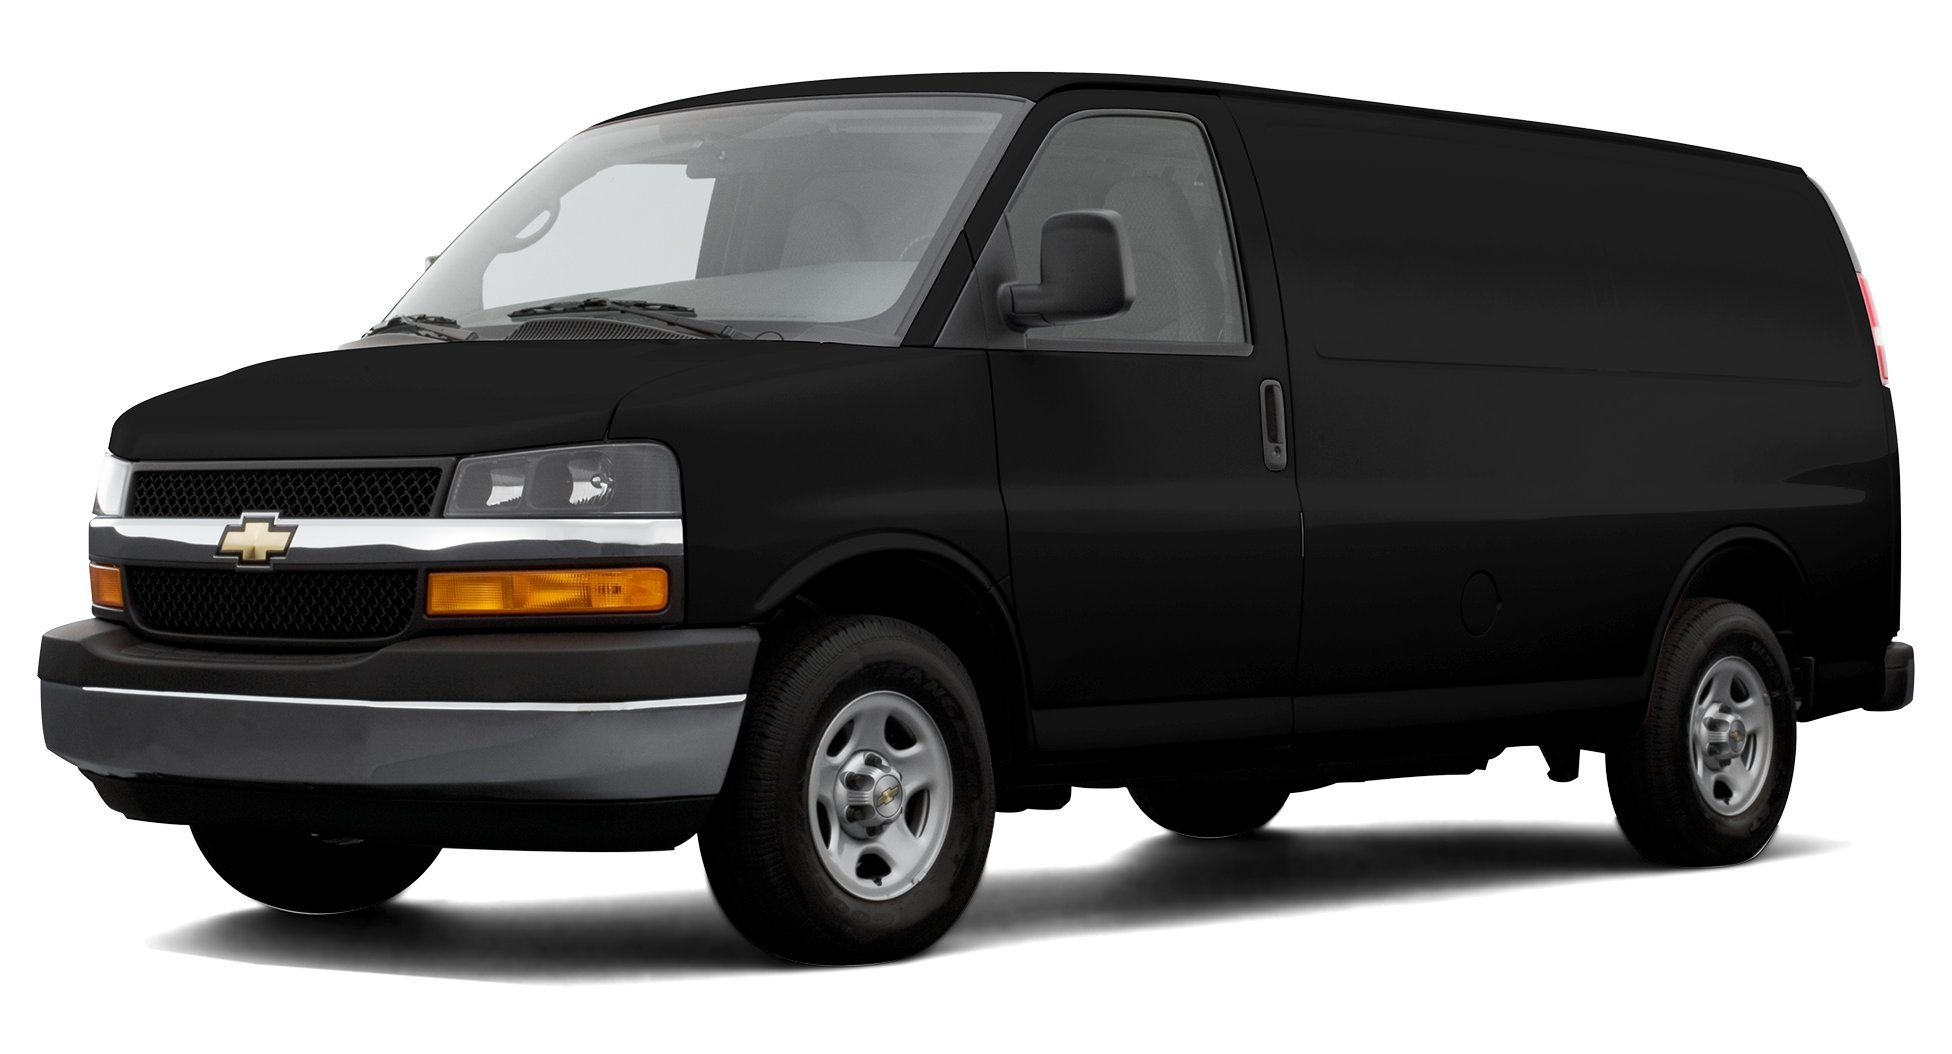 2007 Chevrolet Express 1500 Reviews Images And Specs 1949 Chevy Step Van All Wheel Drive 135